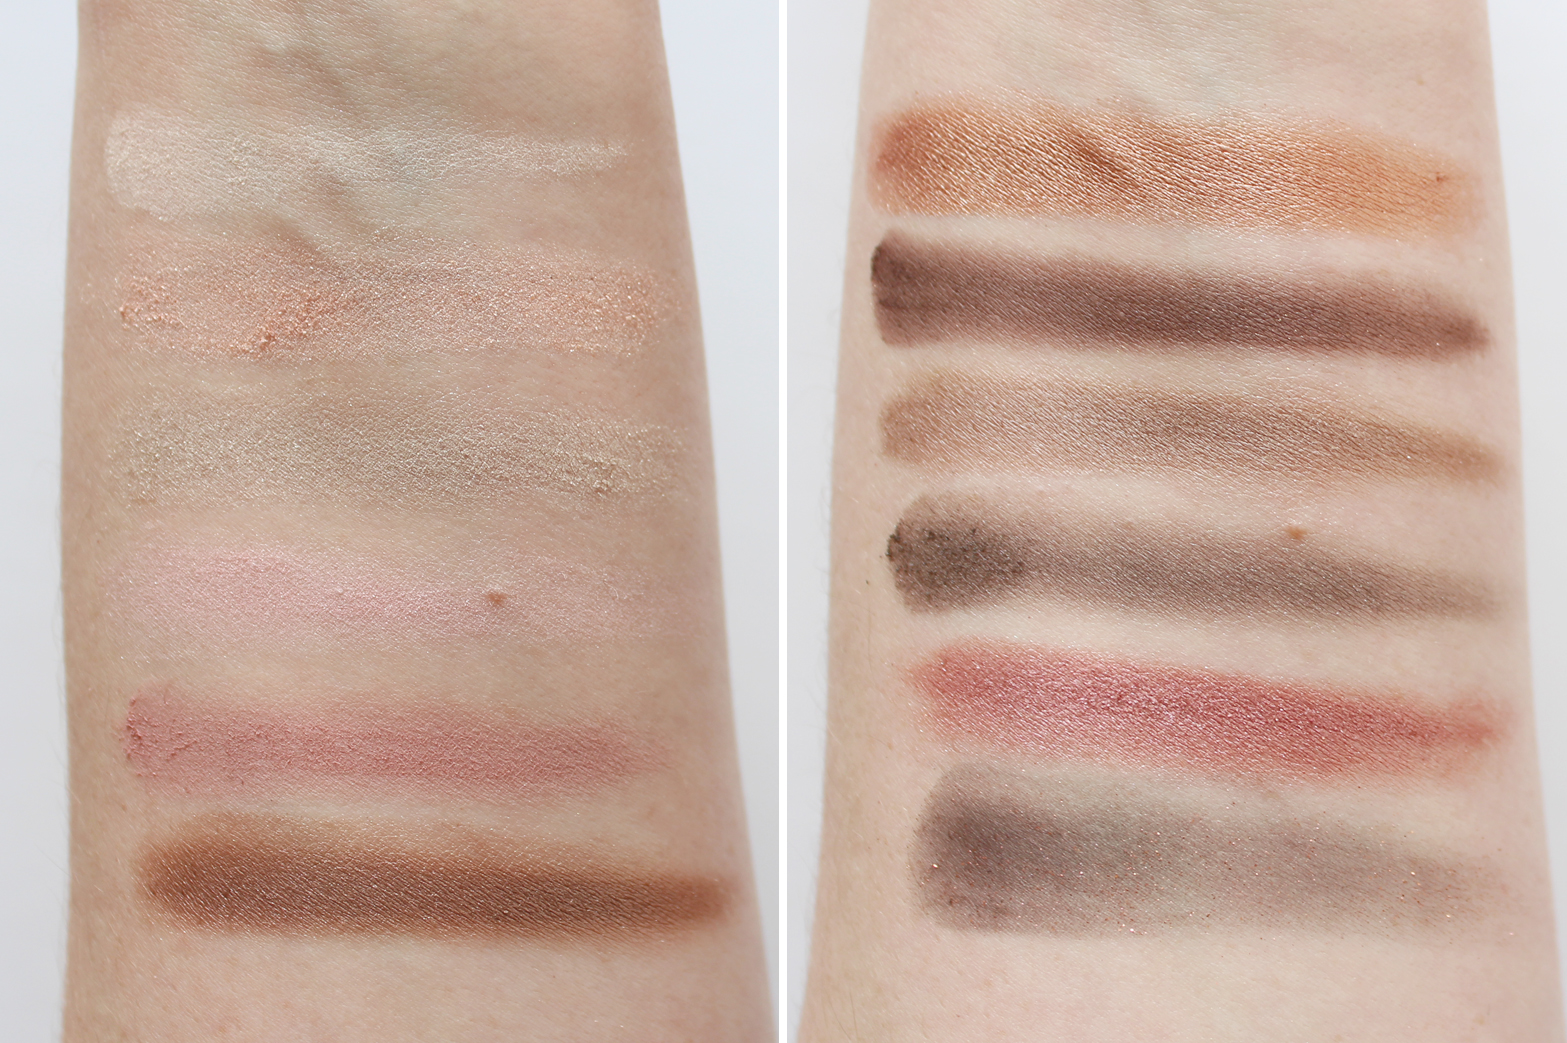 MAYBELLINE | The Blushed Nudes Eyeshadow Palette - Review + Swatches - CassandraMyee